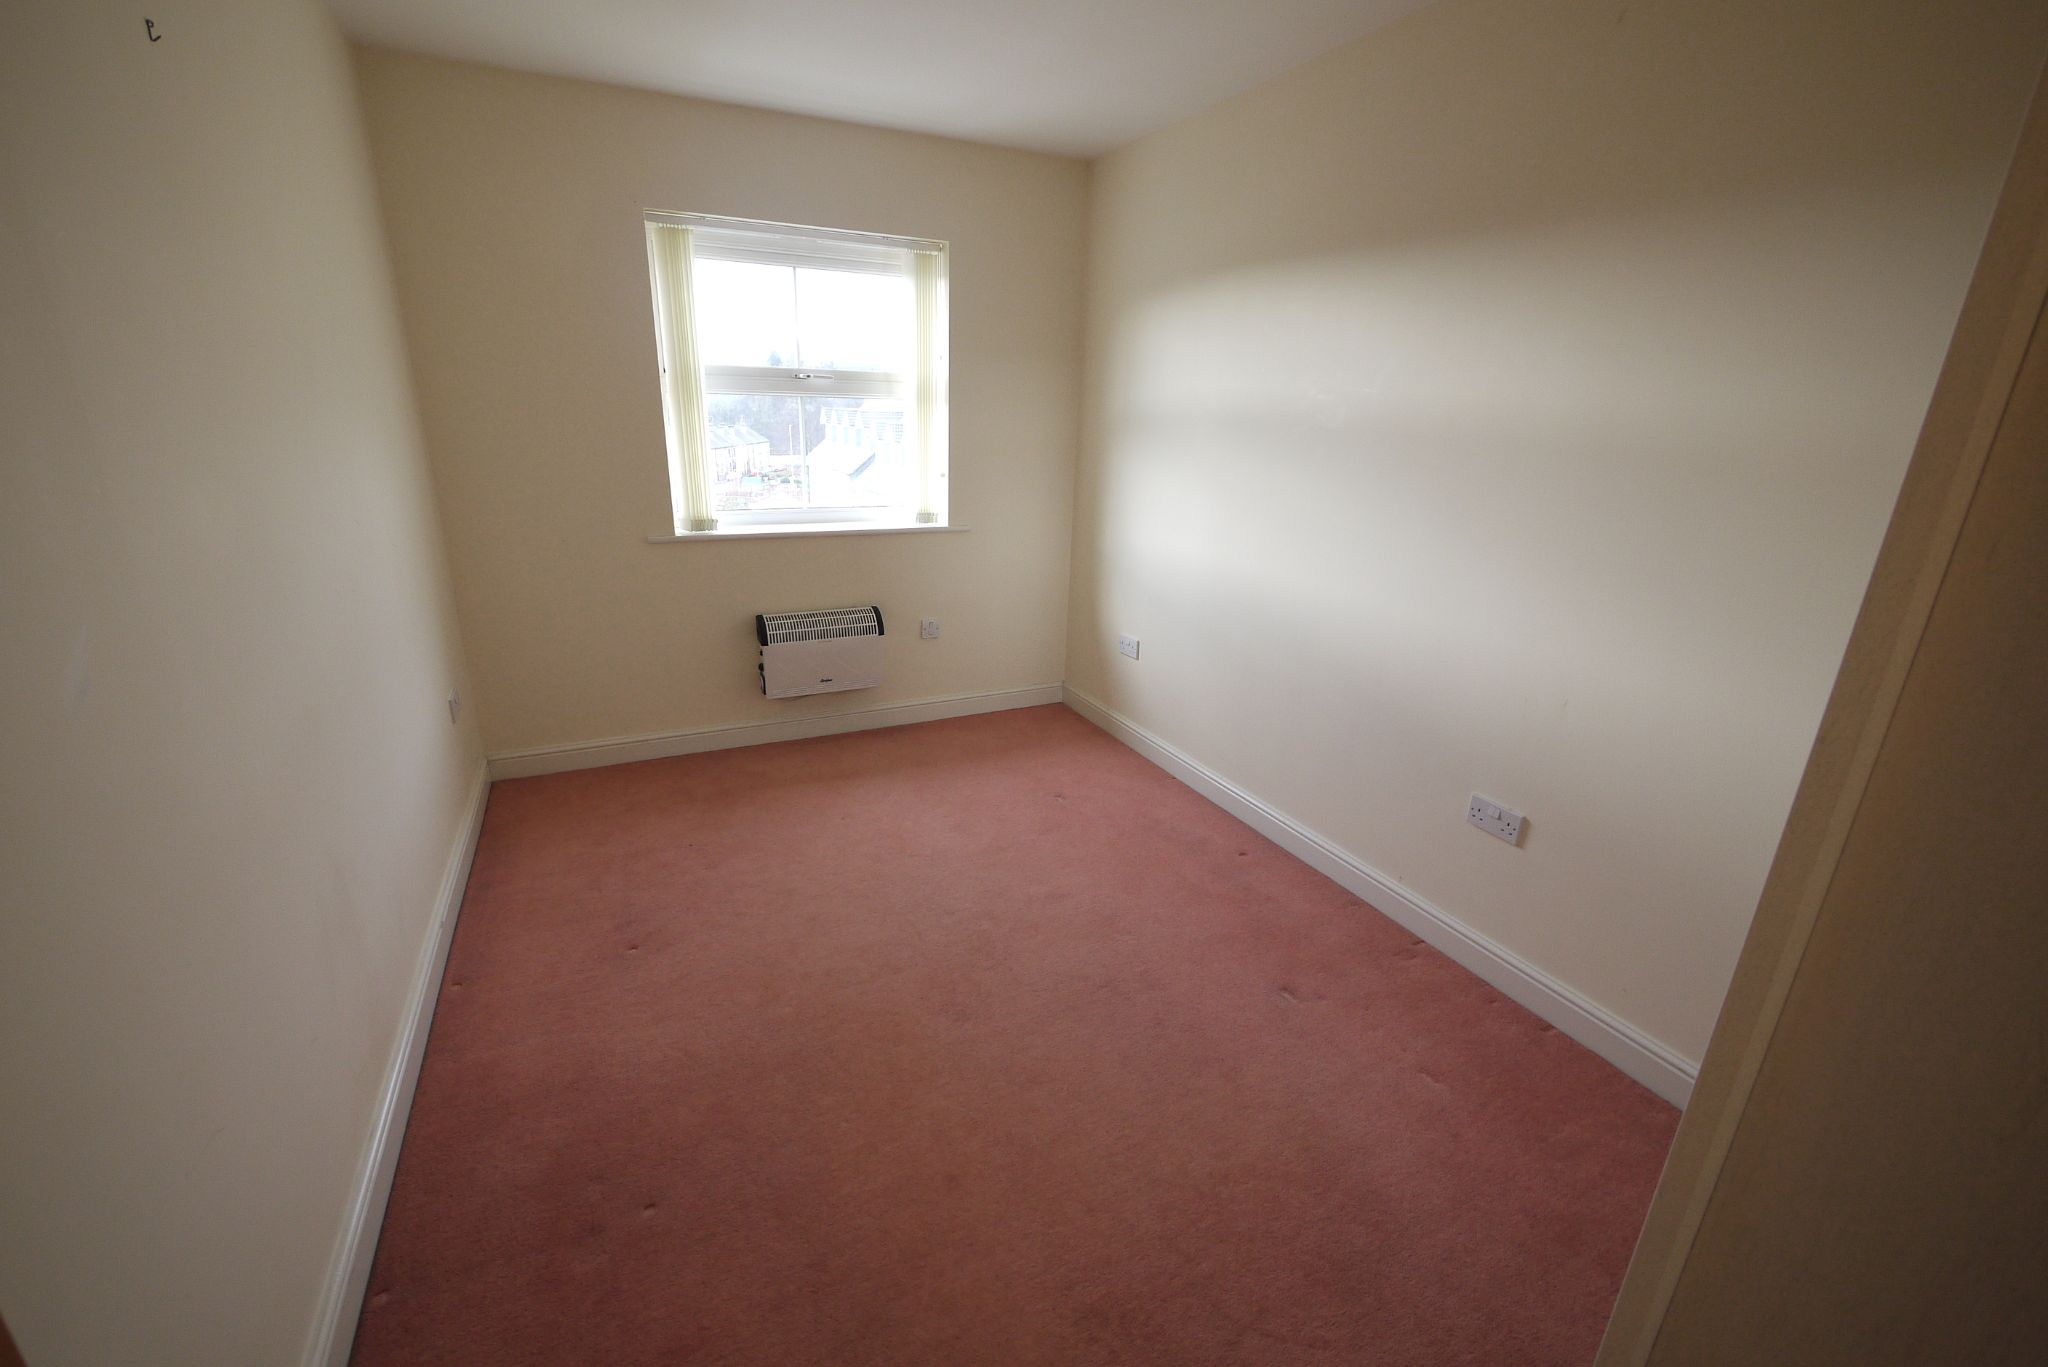 2 bedroom apartment flat/apartment For Sale in Brighouse - Bedroom 2.